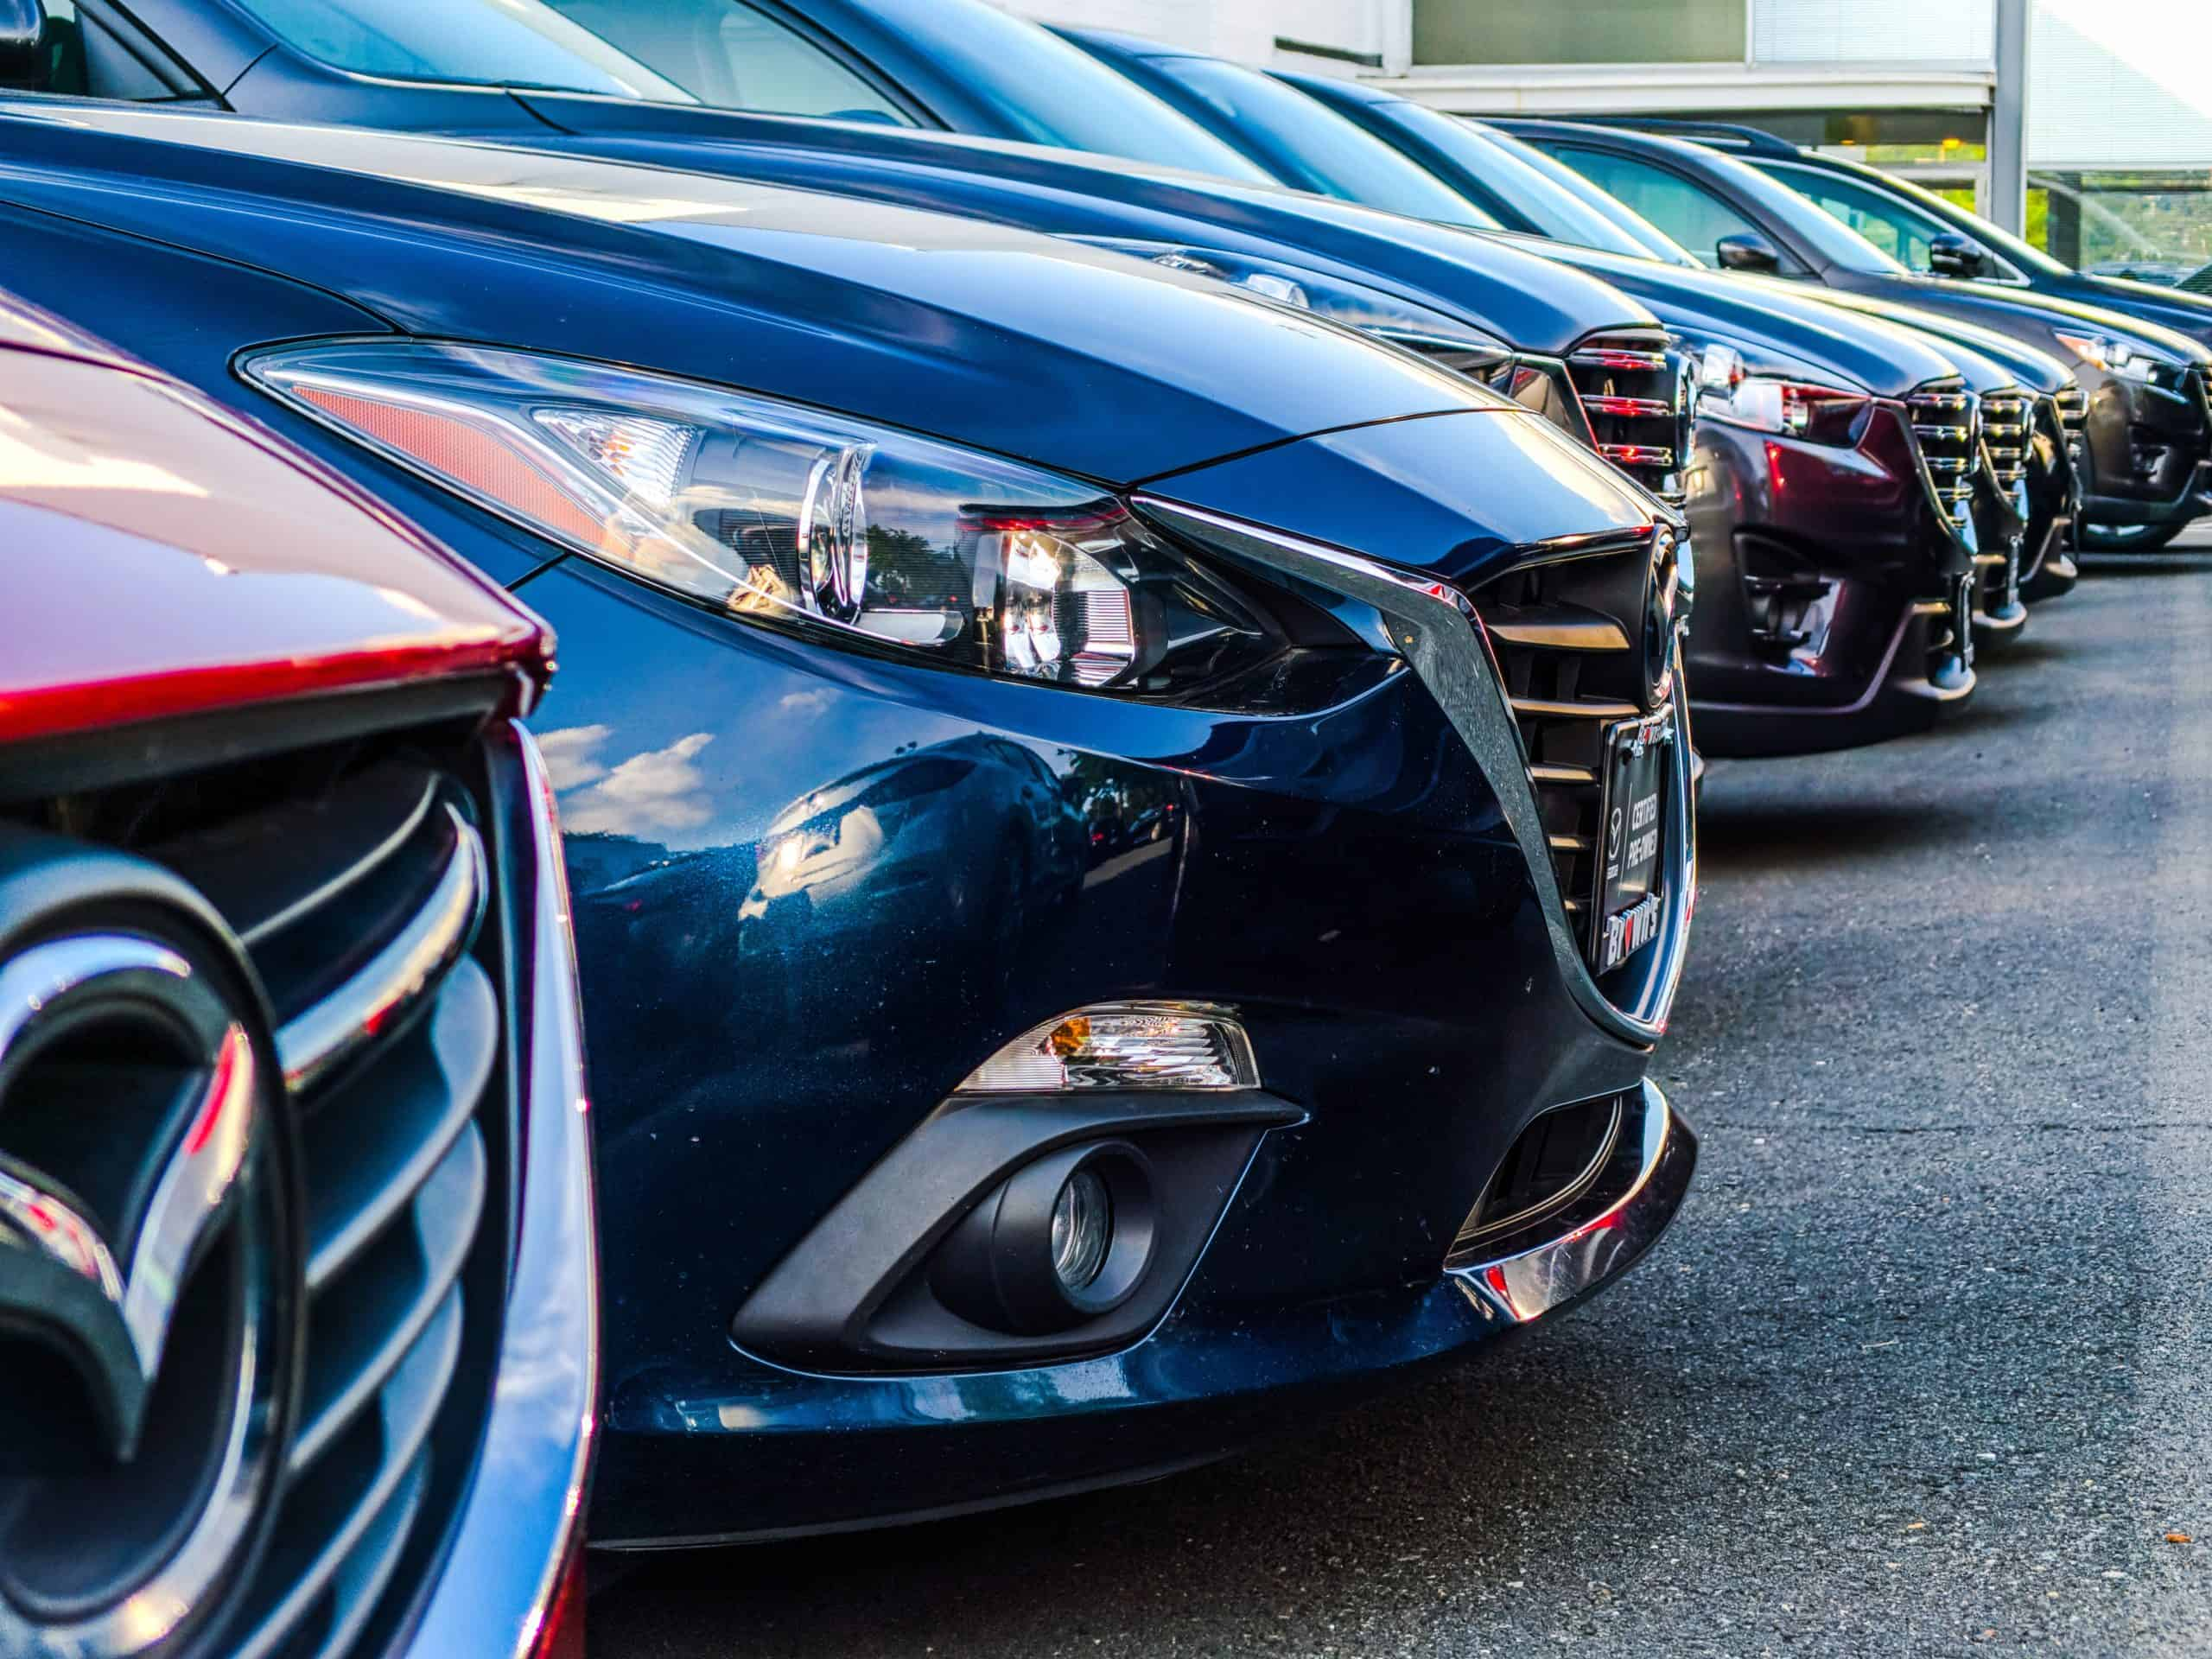 What Car Should I Buy? Here Are 12 Factors to Guide Your Decision